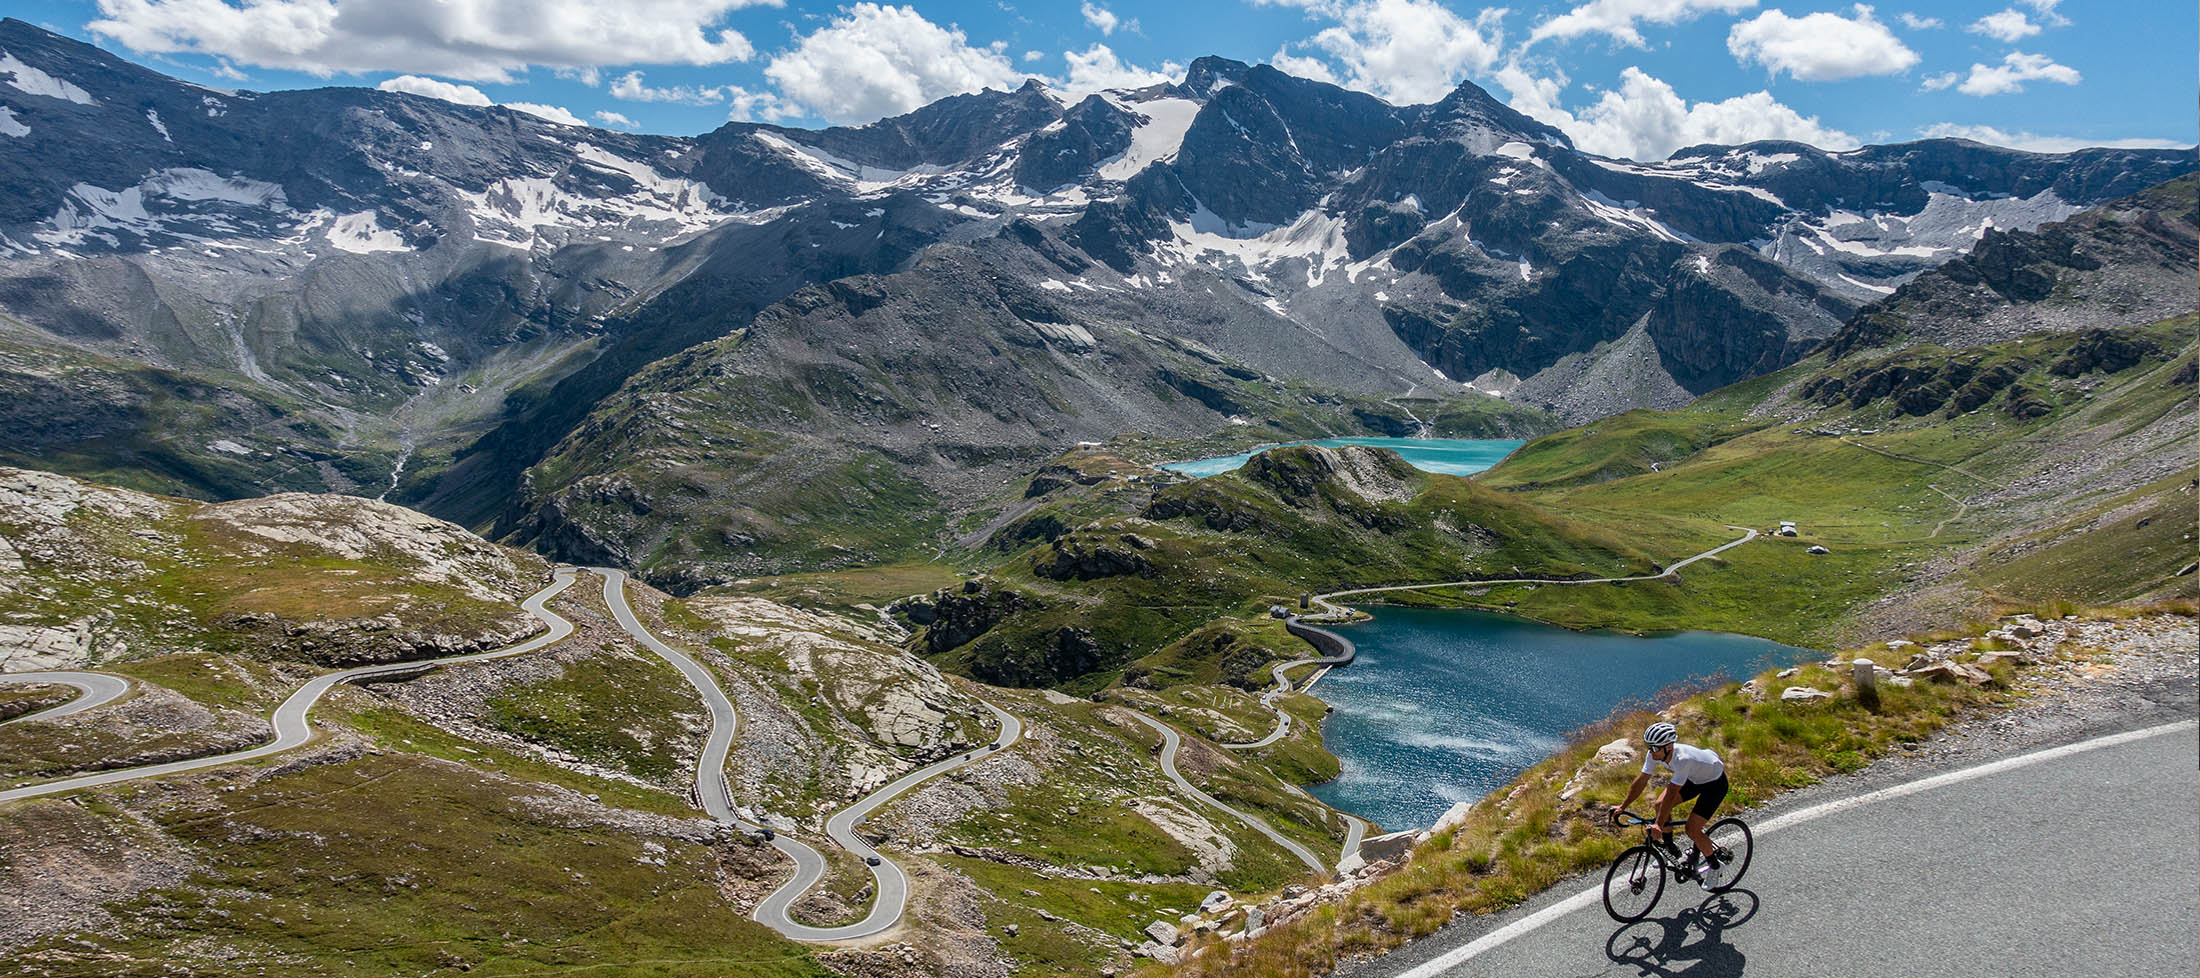 Col de Nivolet Pass in Italy - recommended place for cycling